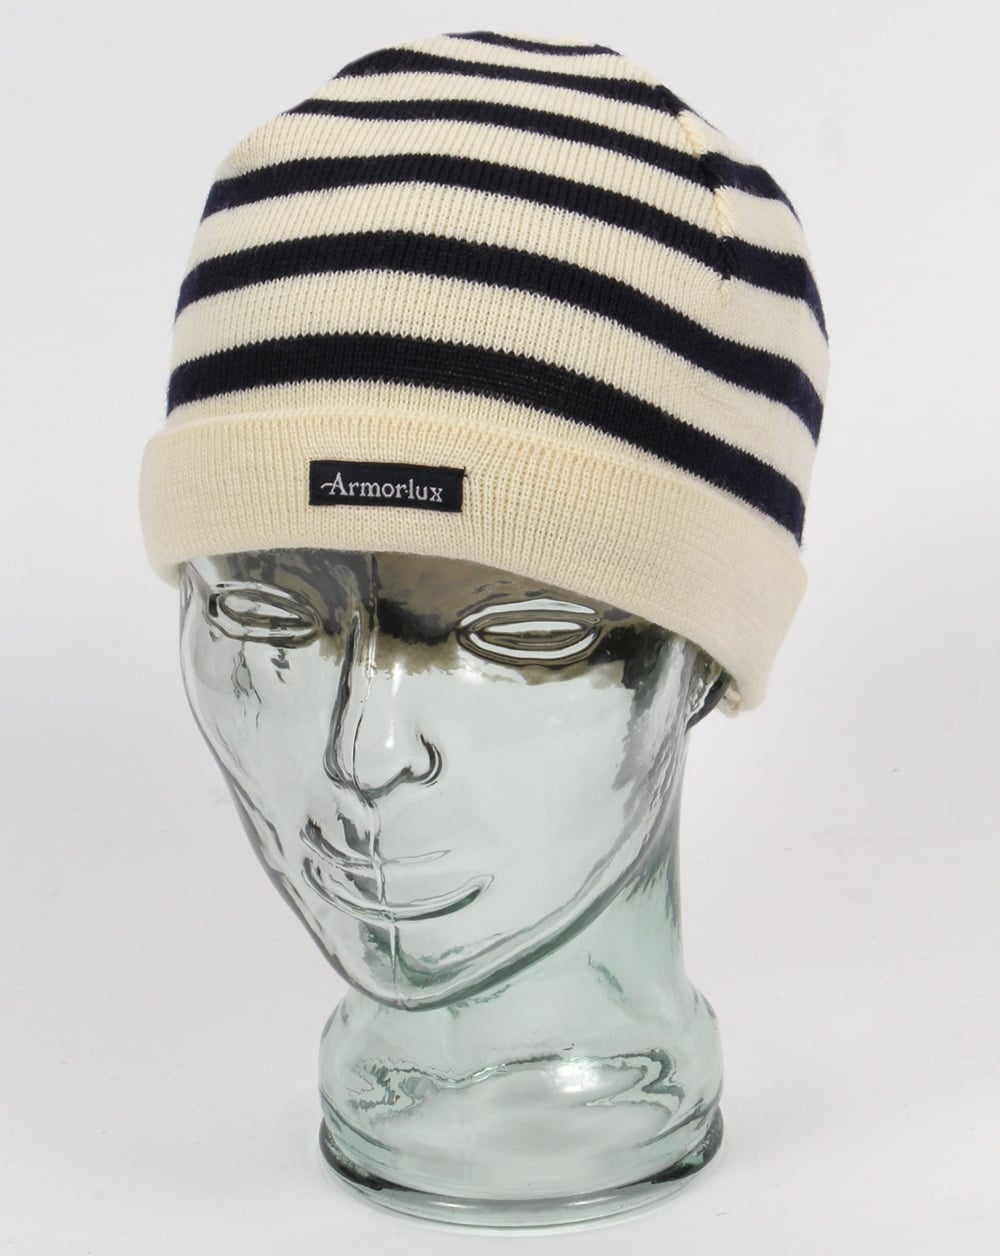 adf21234a Armor-lux Striped Beanie Hat Nature Navy - Hats And Caps from 80s Casual  Classics UK